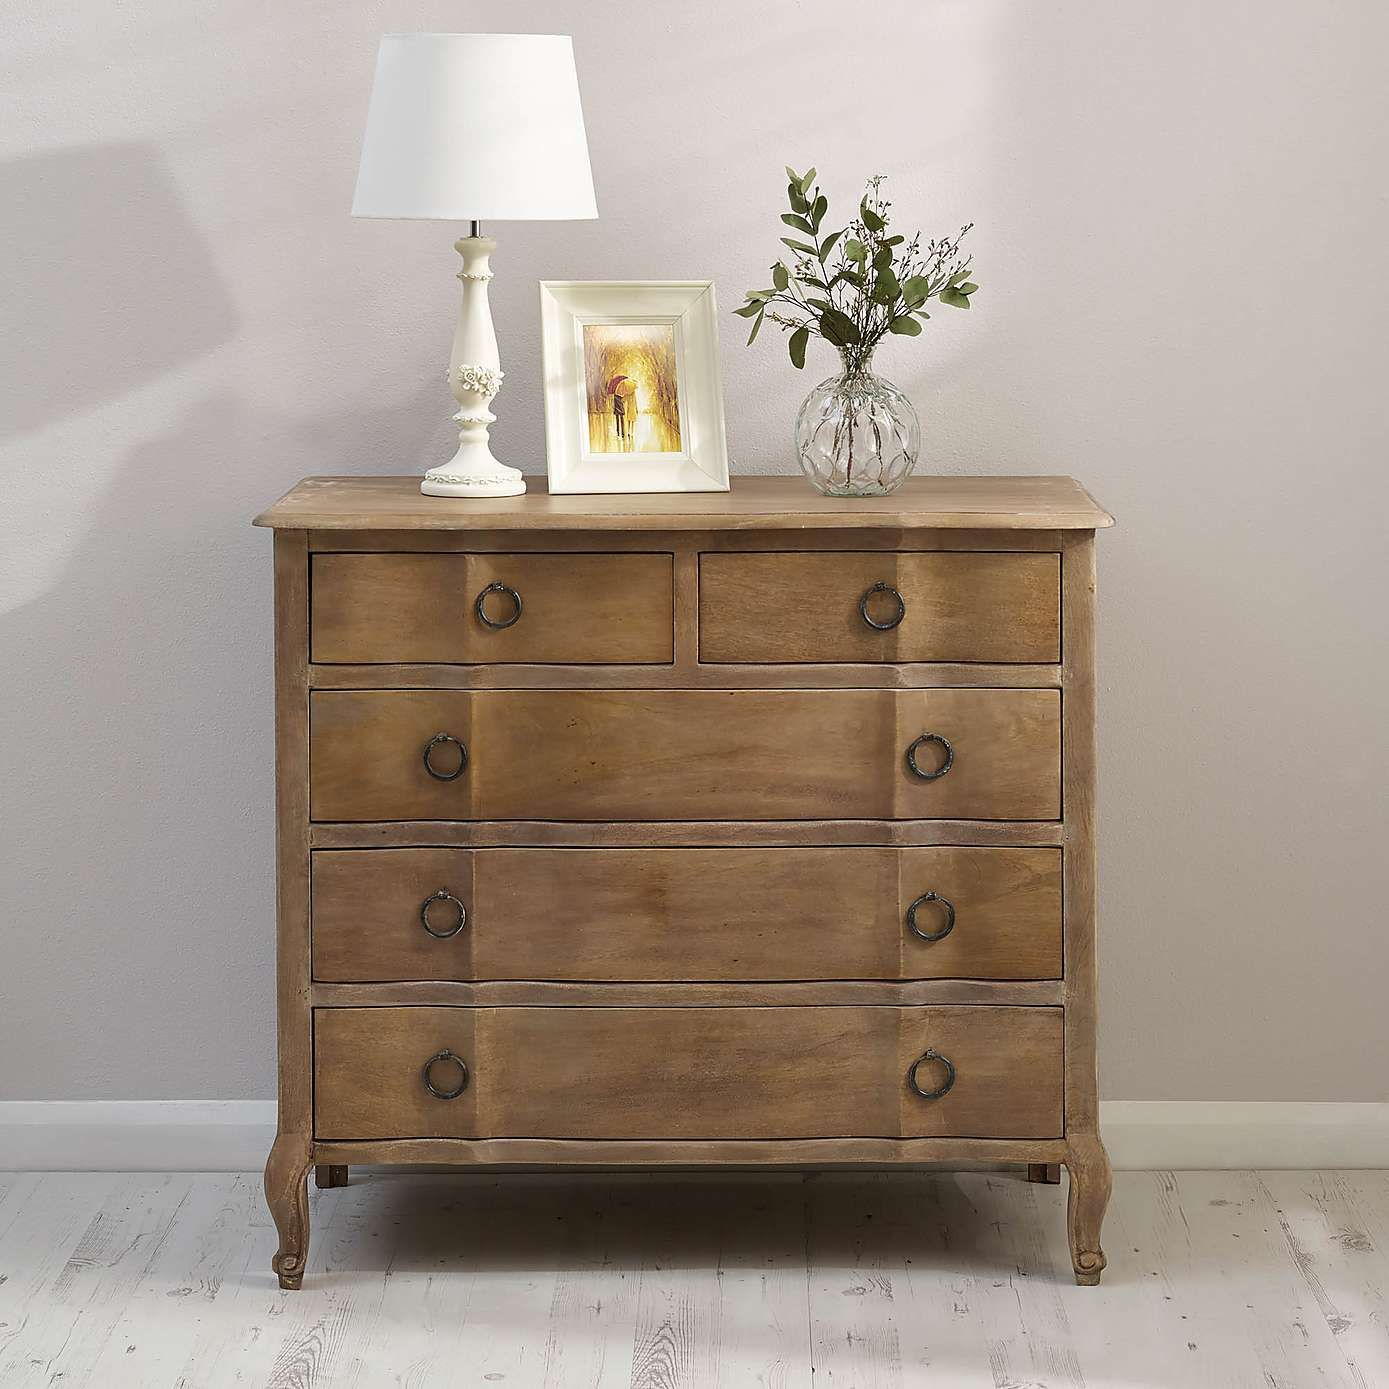 Amelie 5 Drawer Chest Chest Of Drawers Decor Bedroom Chest Of Drawers Brown Chest Of Drawers